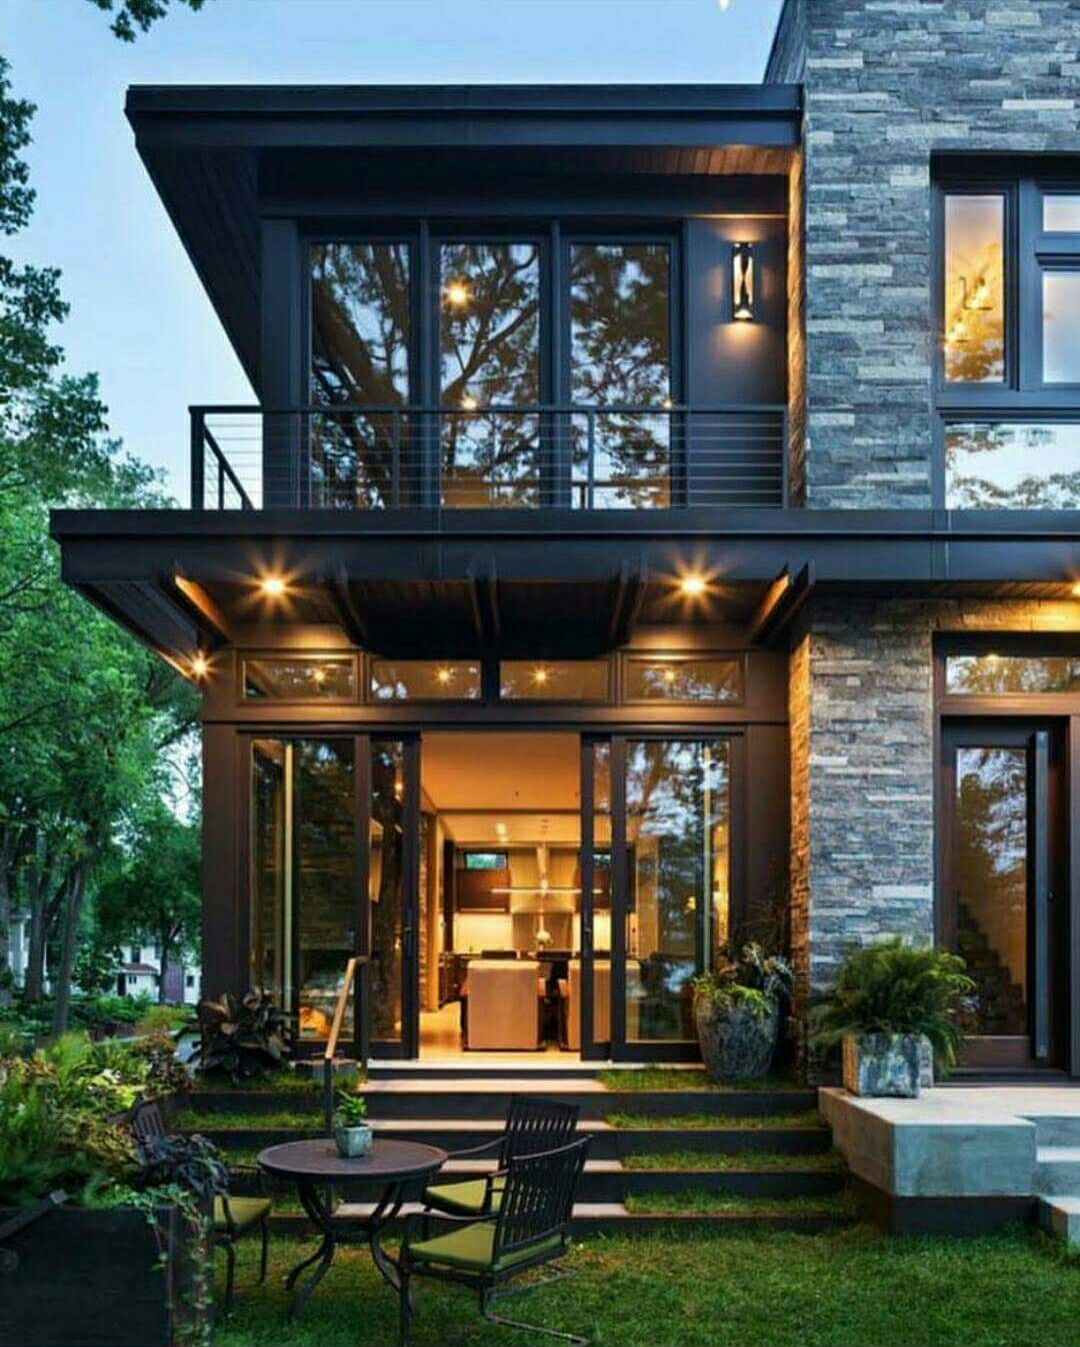 pinterest seakissedxx luxury pools pinterest explore contemporary houses modern houses and more